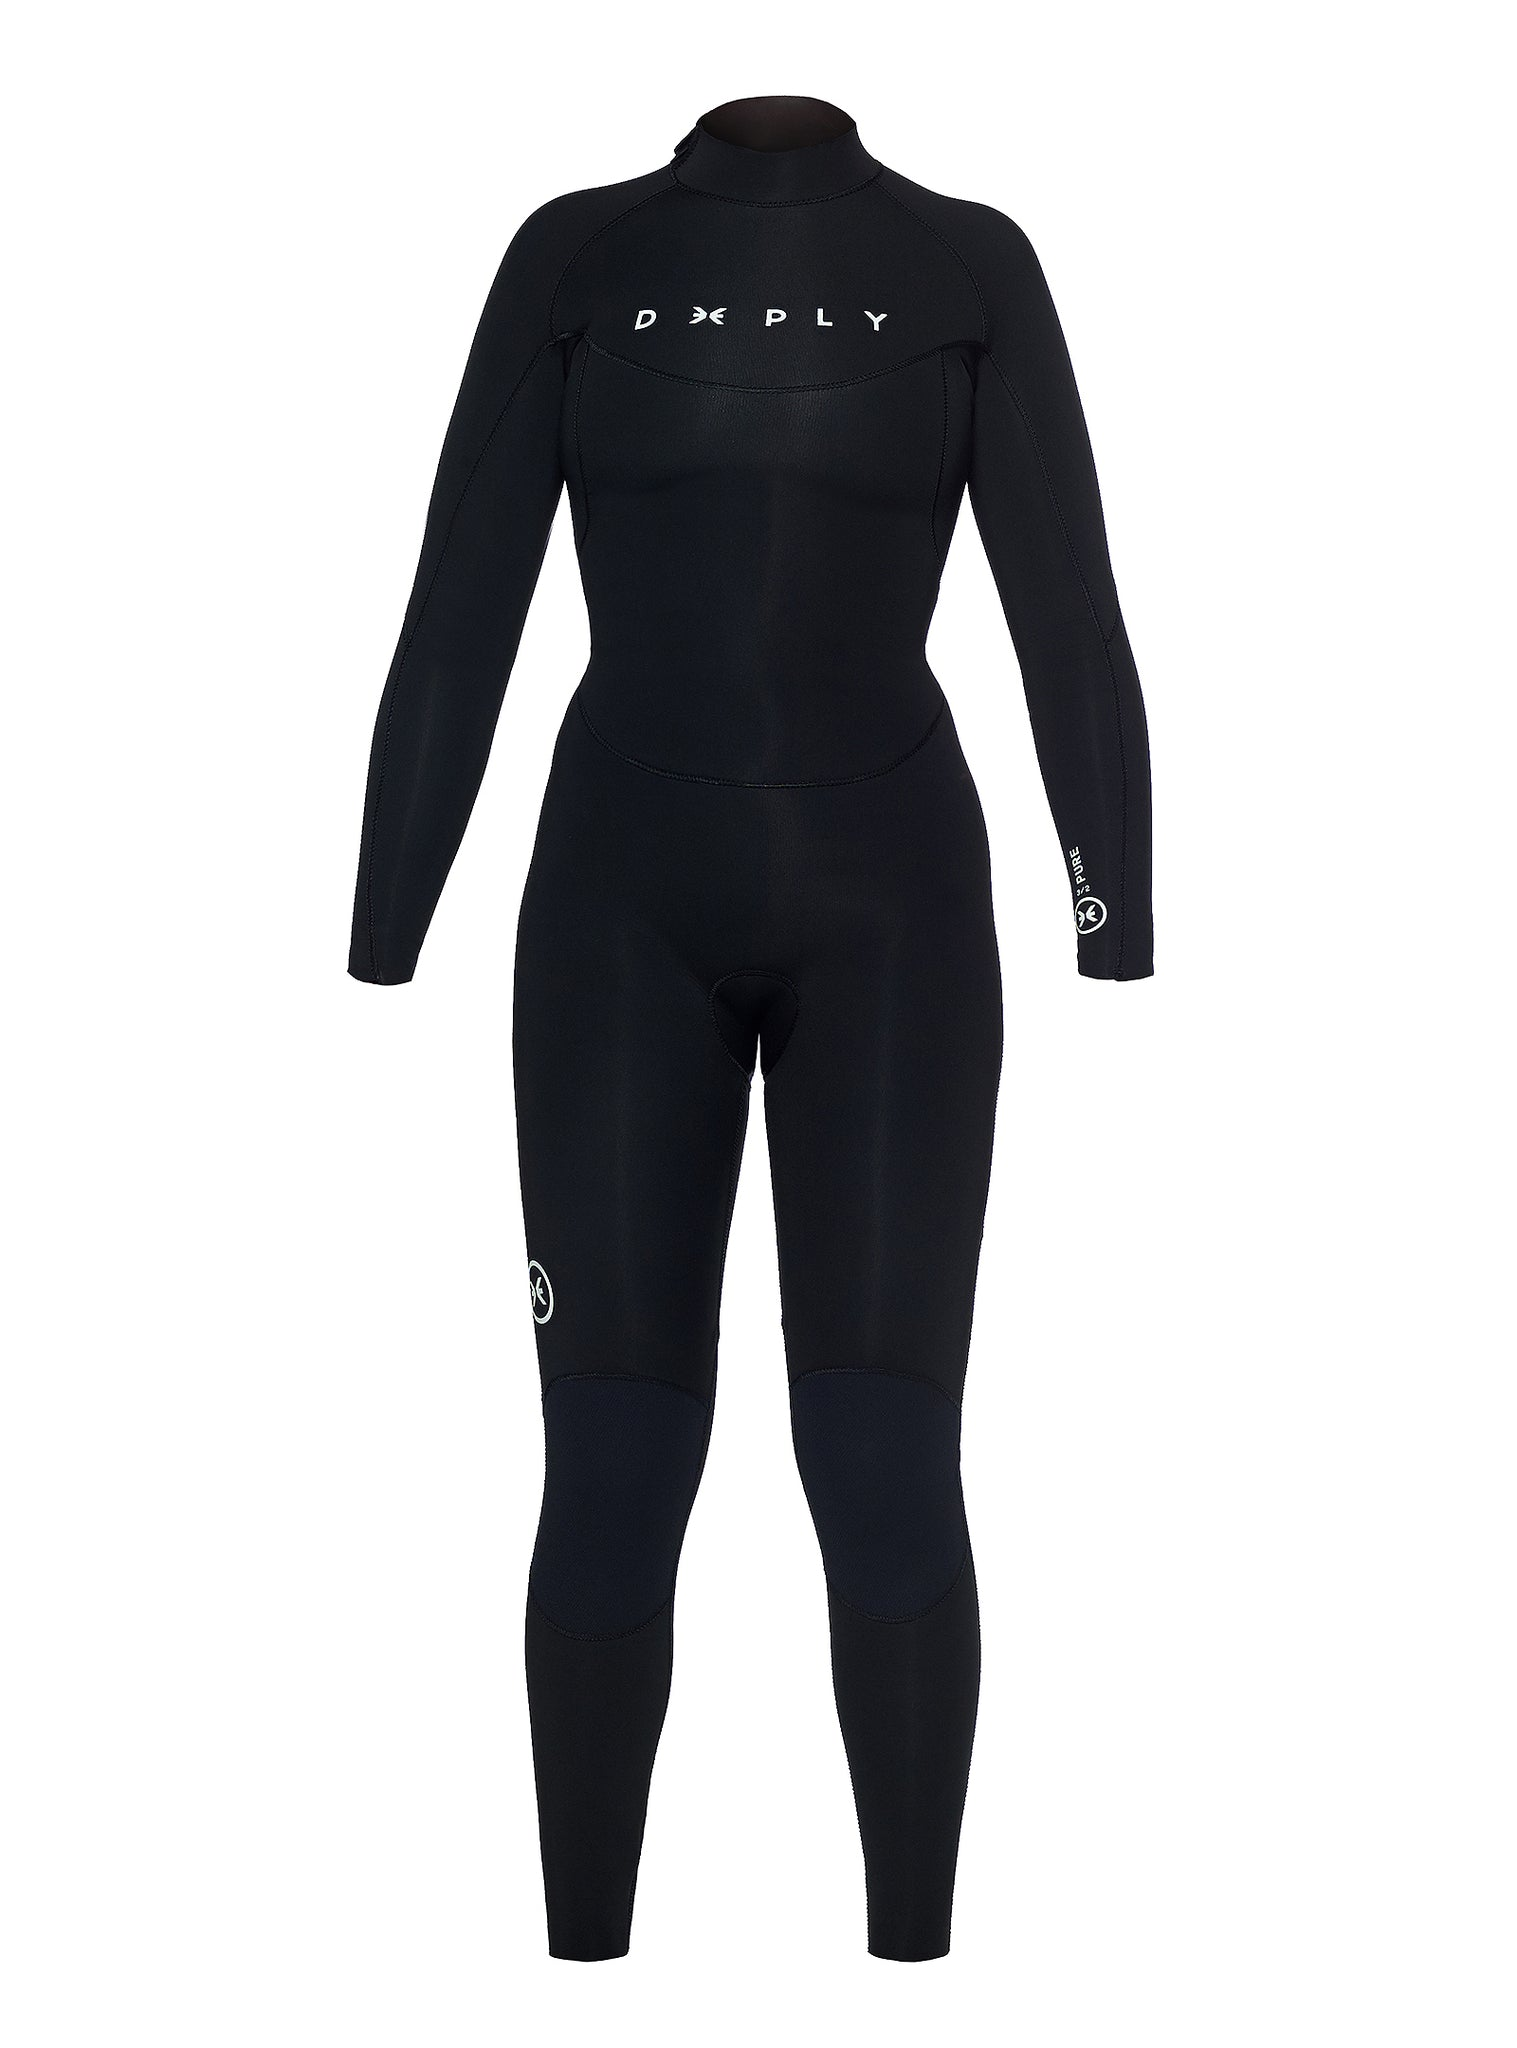 Wetsuit Woman Pure 3/2 Back Zip Black